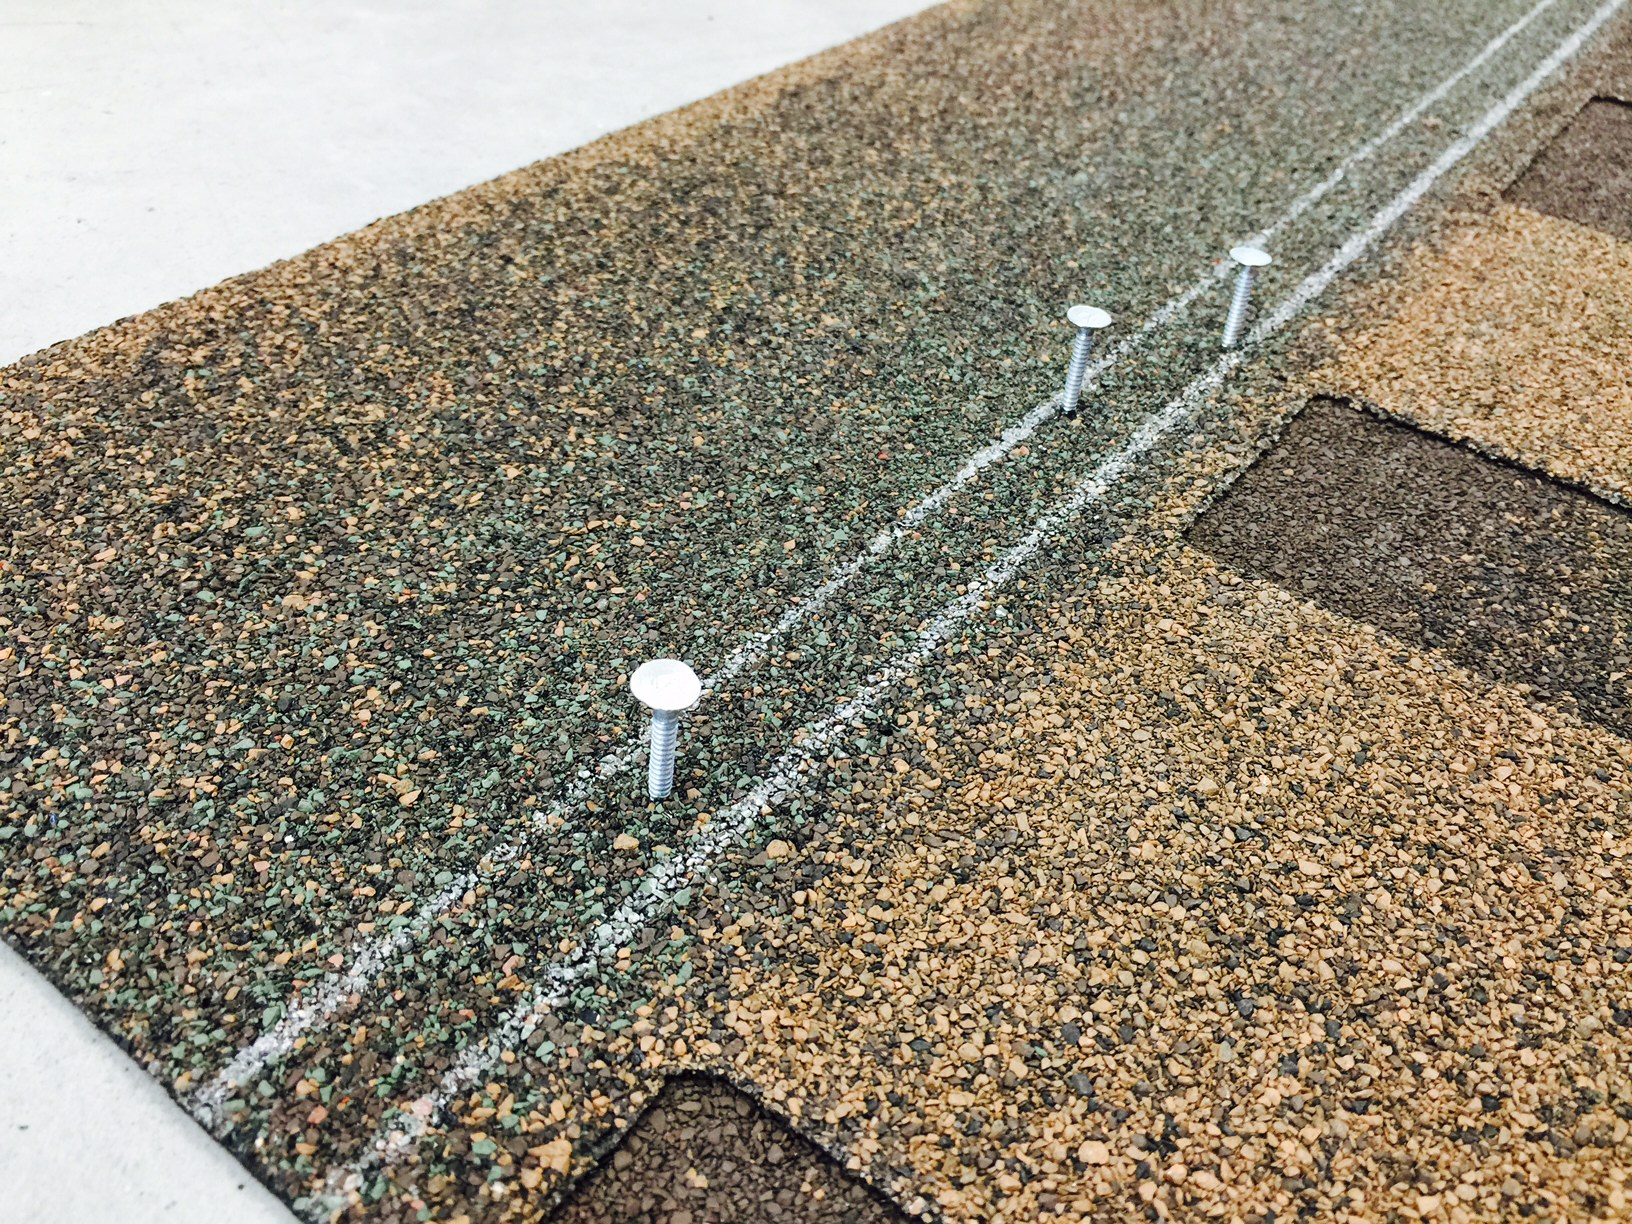 Proper nailing is essential to the performance of roof shingles